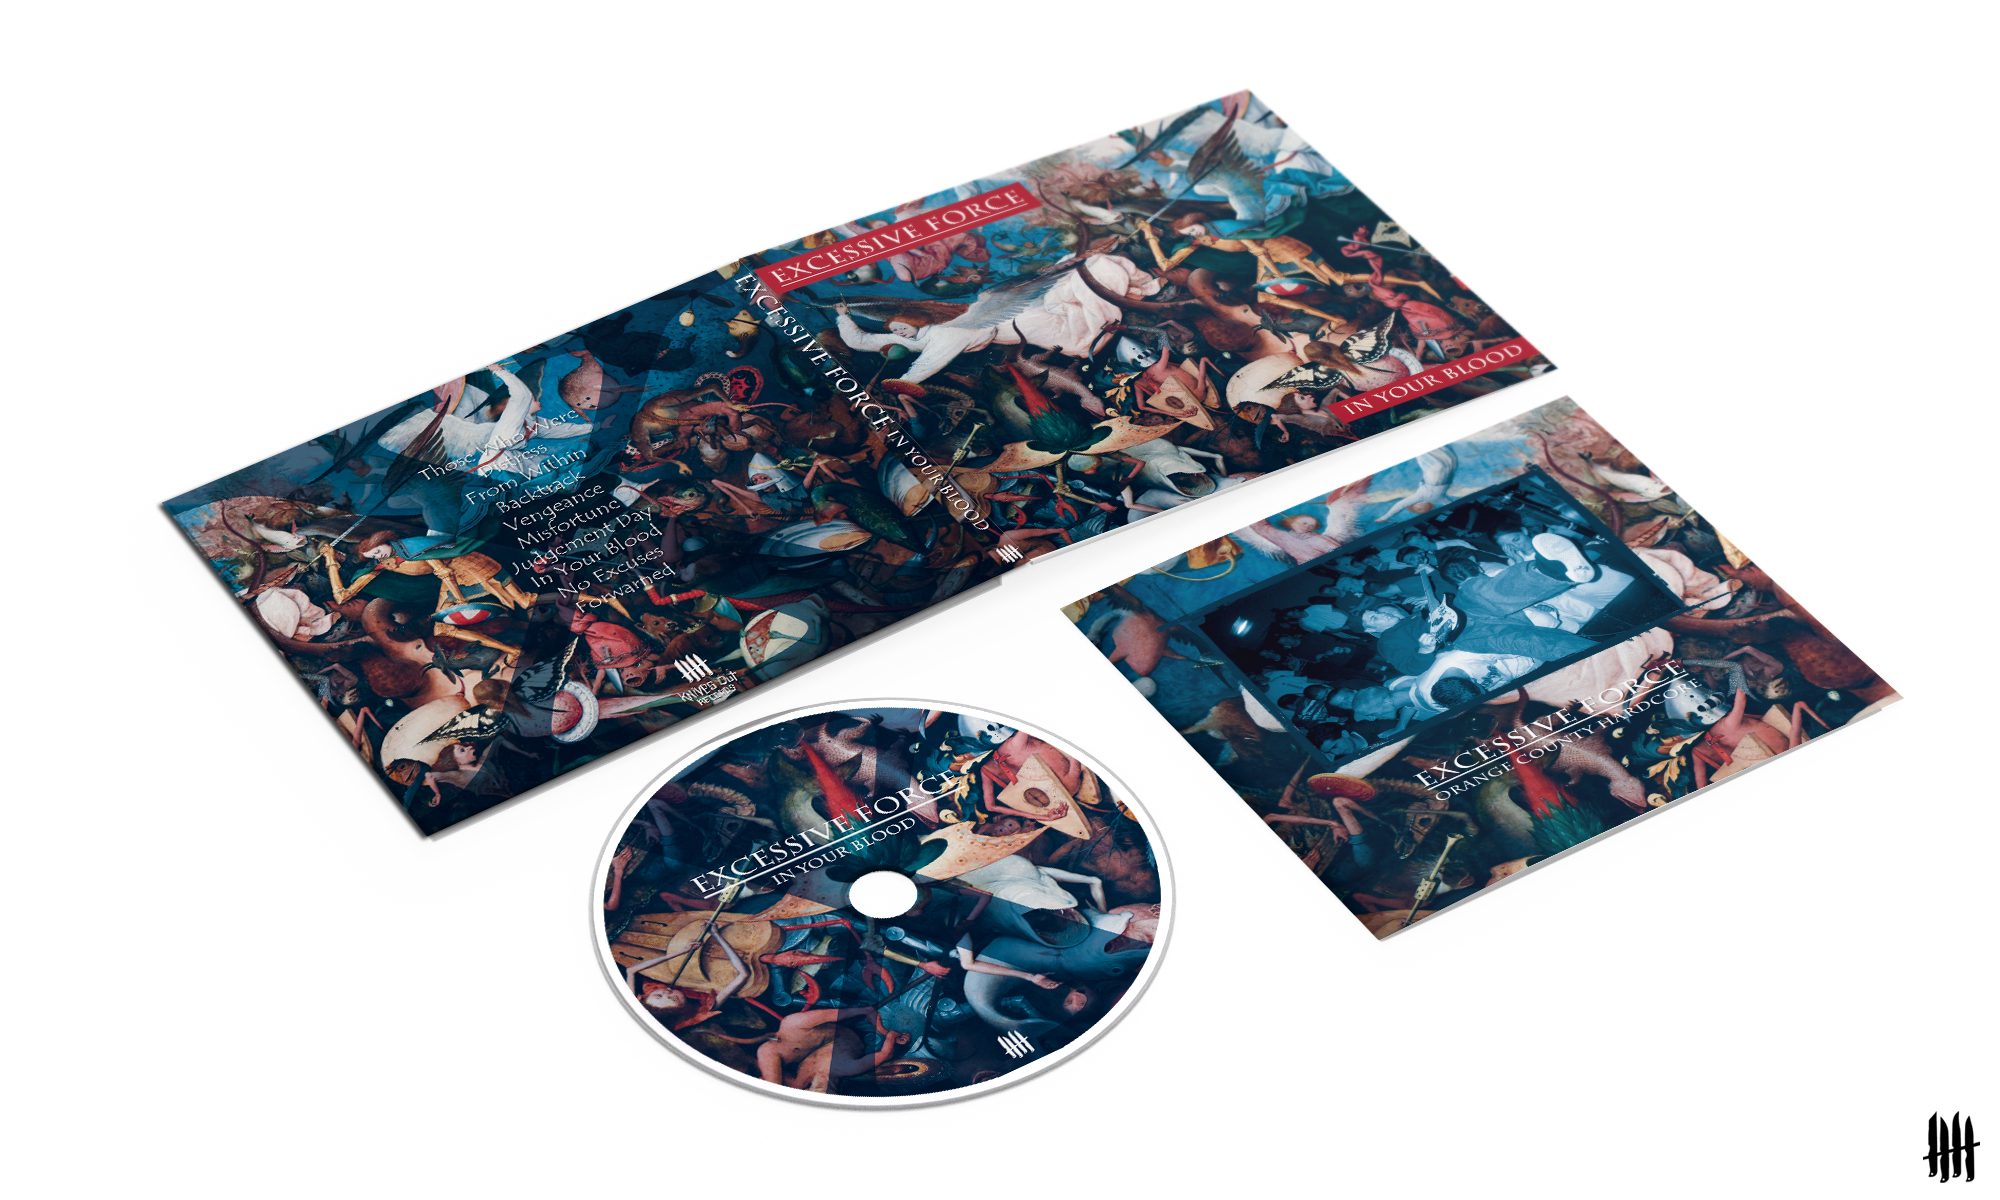 EXCESSIVE FORCE In Your Blood digipack CD with classic booklet